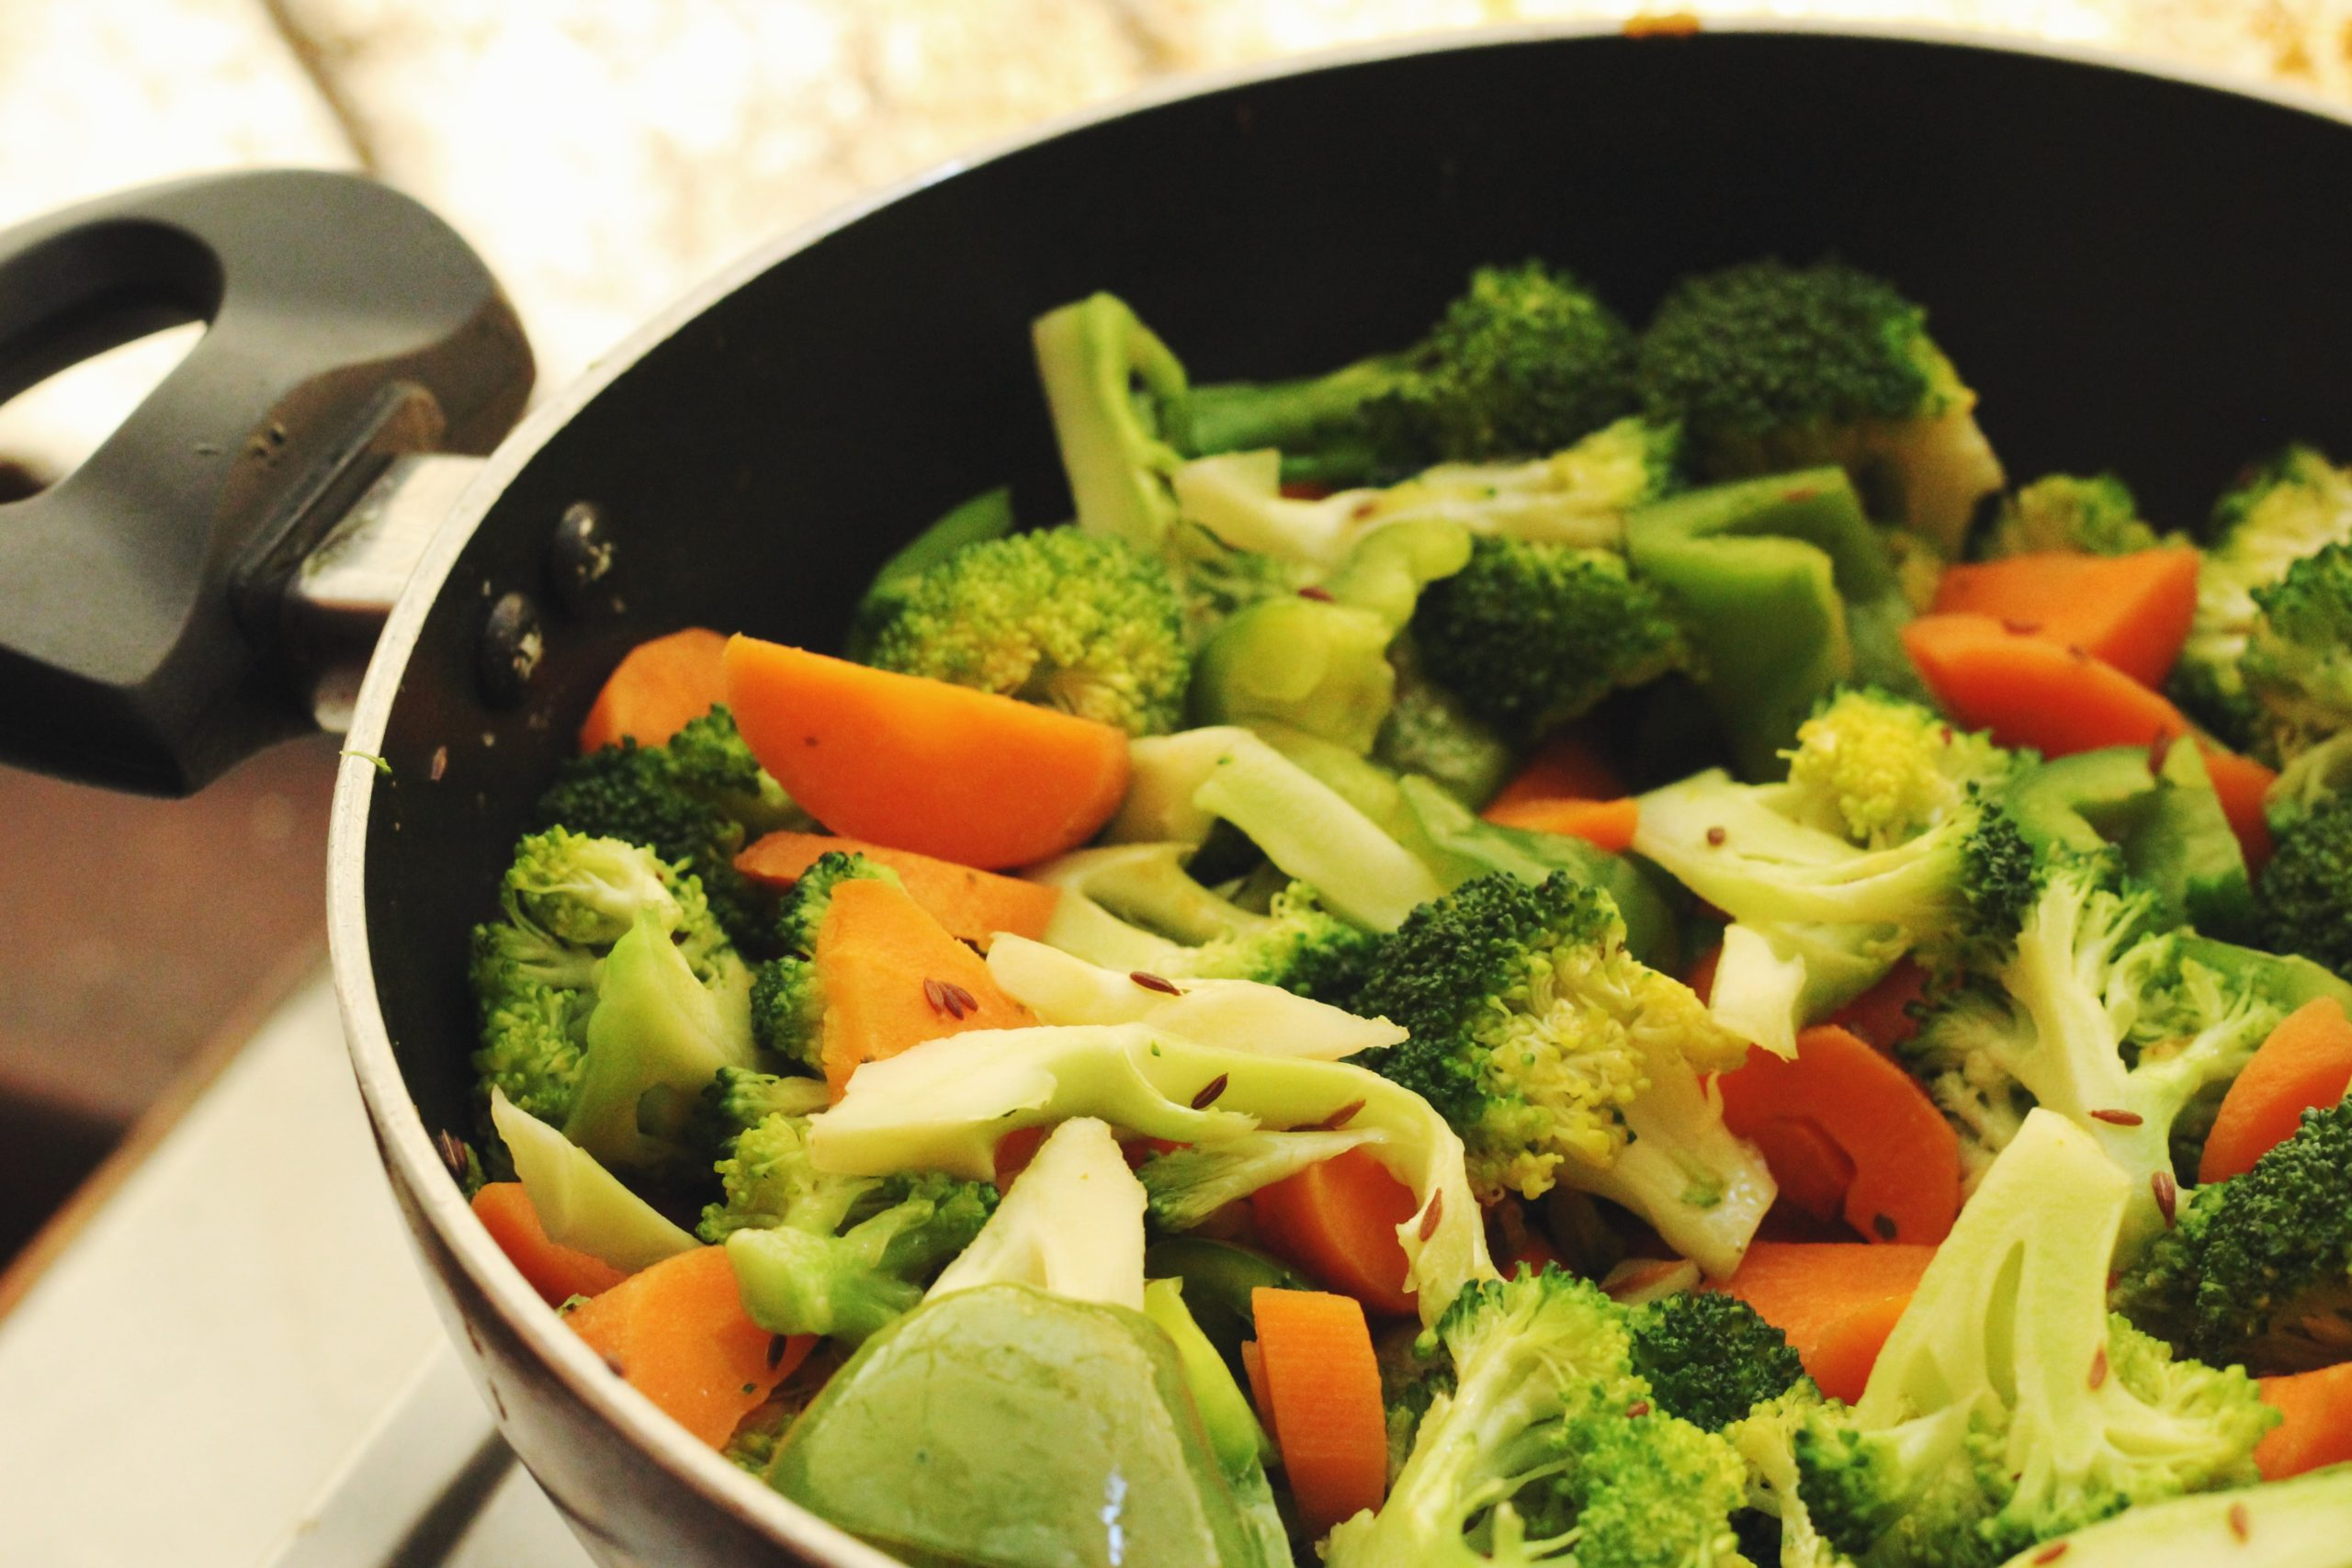 How Different Cooking Methods Affect the Nutrition Content of Vegetables